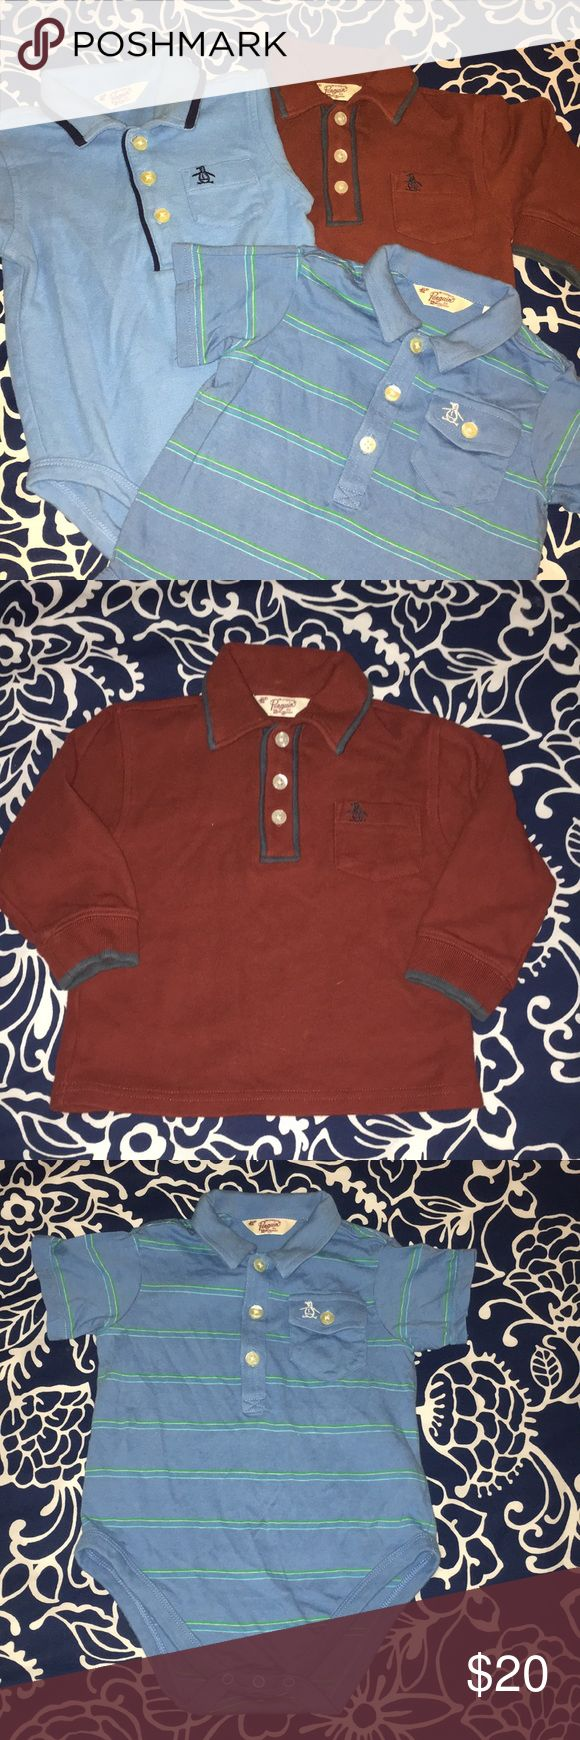 Original Penguin baby Polo bundle These Original Penguin polos/onesies are in EXCELLENT pre-loved condition. Worn only a couple of times for family photos. There is one long sleeve polo (burgundy with navy contrast piping) and then 2 short sleeve onesie both baby blue, one striped and one with the contrast piping. Original Penguin Shirts & Tops Polos